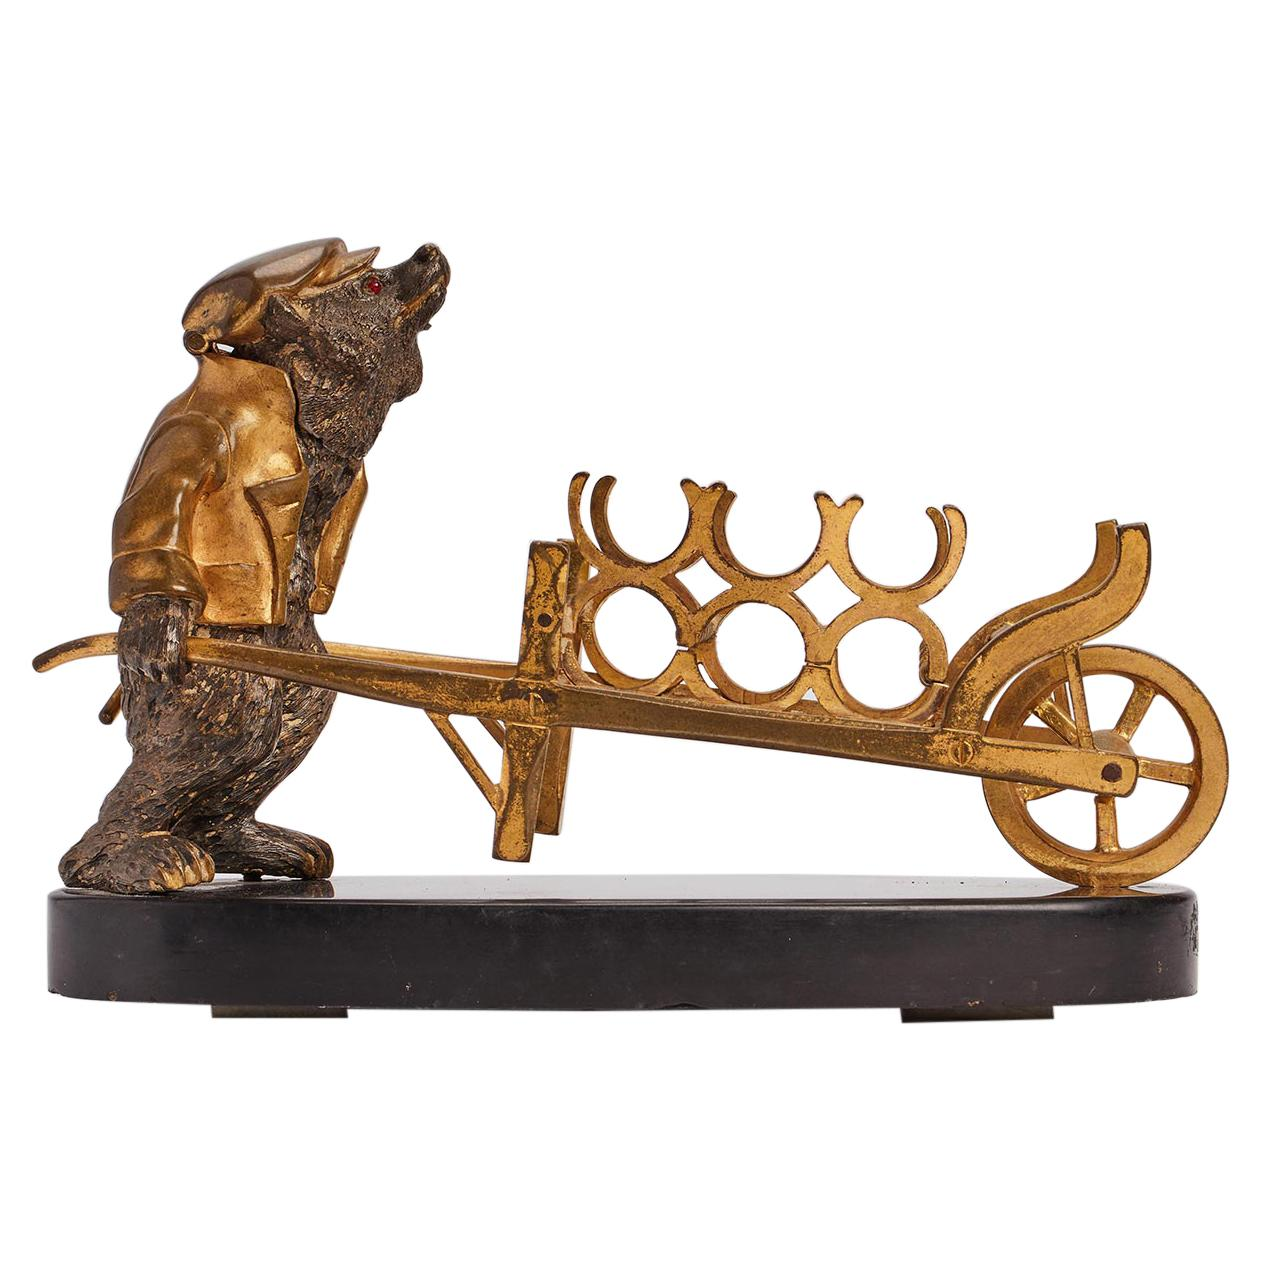 Bear Inkwell and Fountain Pen Holder, Russia, 1880